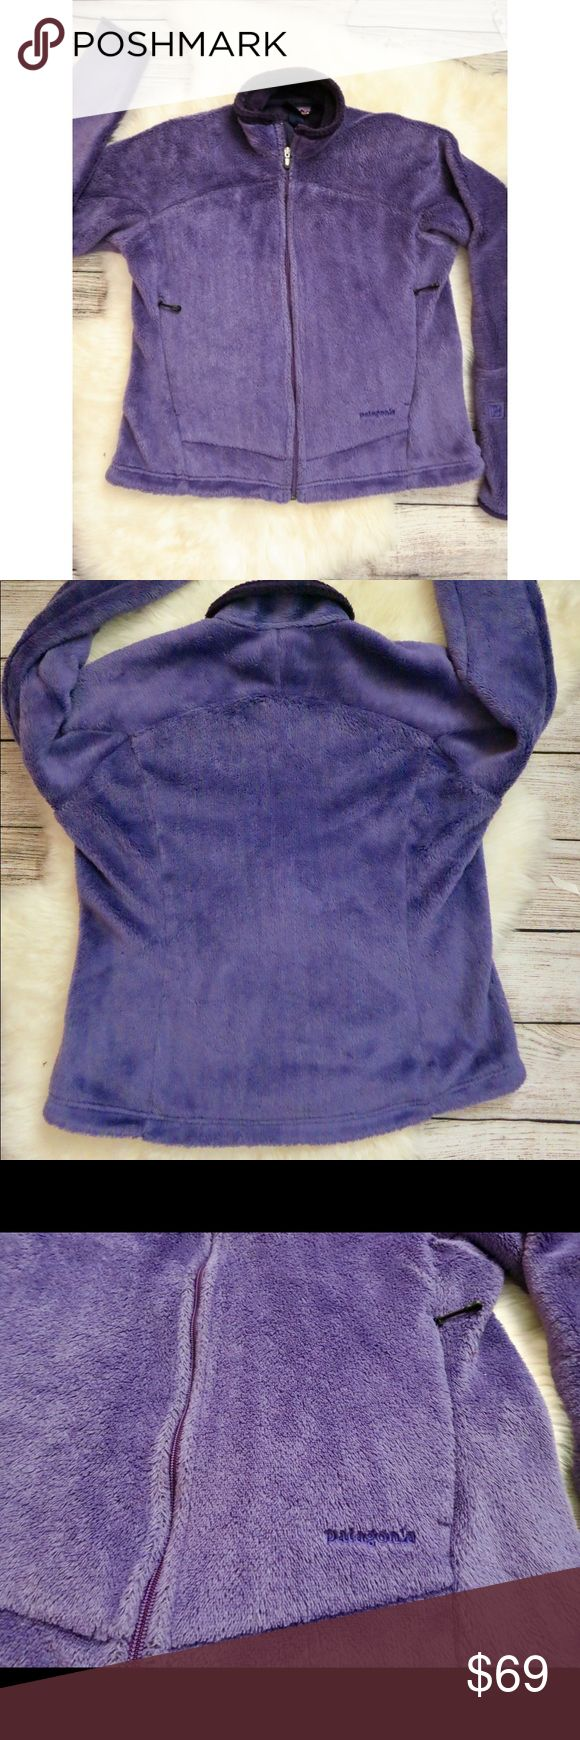 """Patagonia R2 hi-pile fleece jacket purple medium R2 fleece that's super fluffy and cozy. Polartec brand fleece. Good usedcondition. No flaws to note. Tag was cut out but i believe it's a medium (measures 22"""" across) so please check. Purple color. Patagonia Jackets & Coats"""